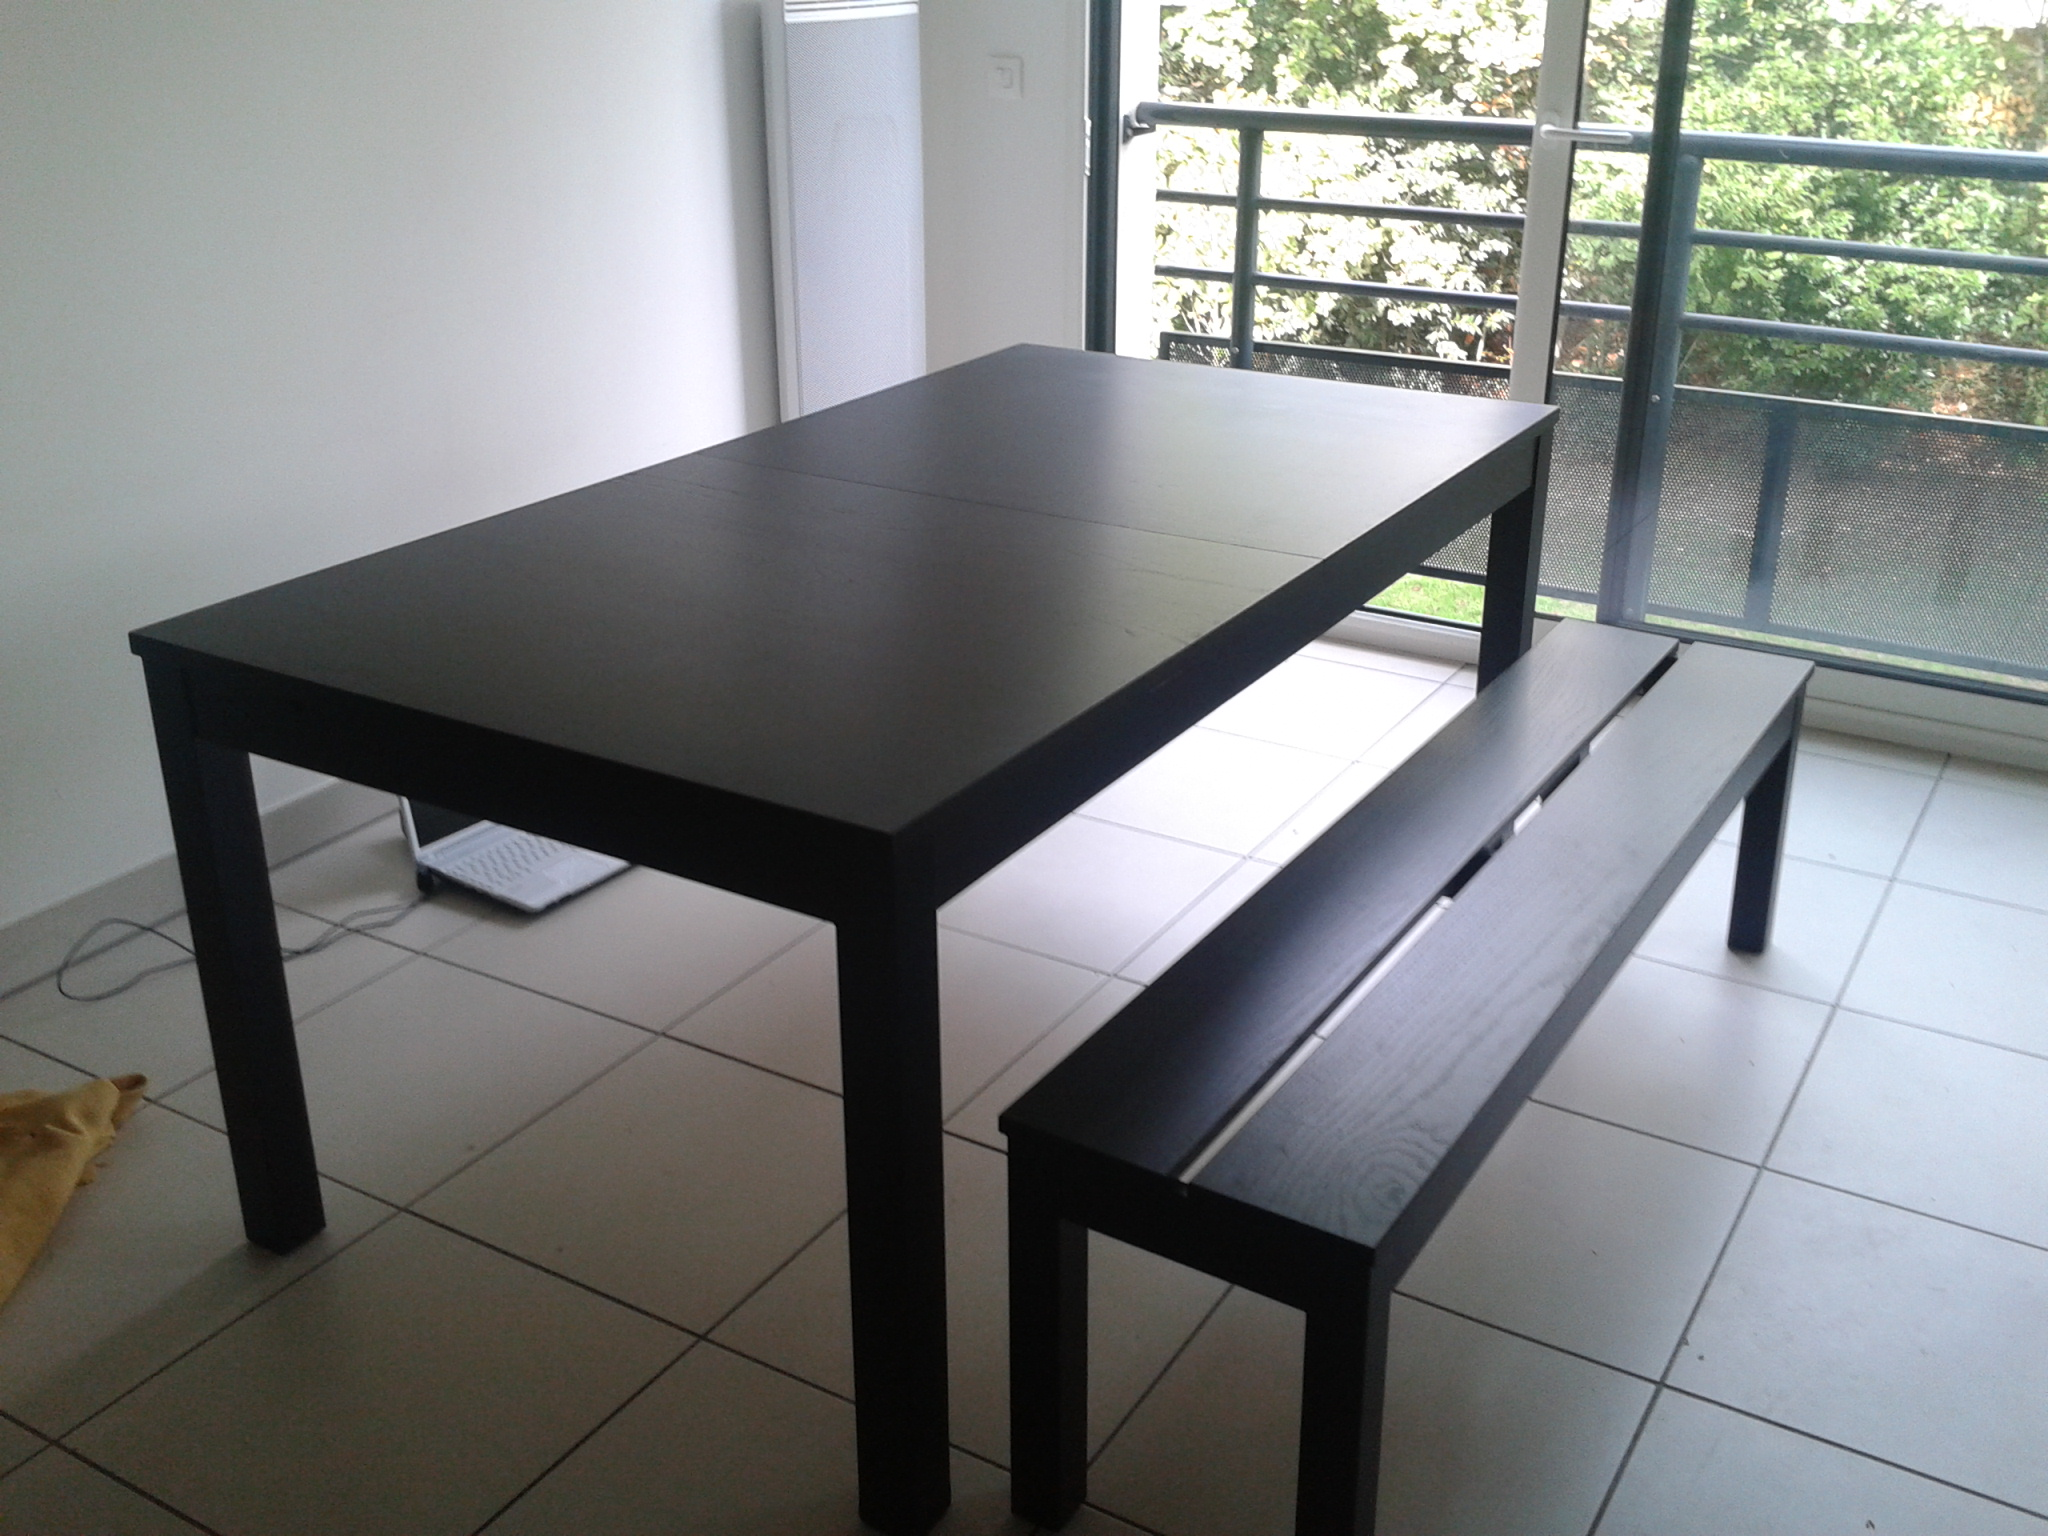 table avec banc. Black Bedroom Furniture Sets. Home Design Ideas